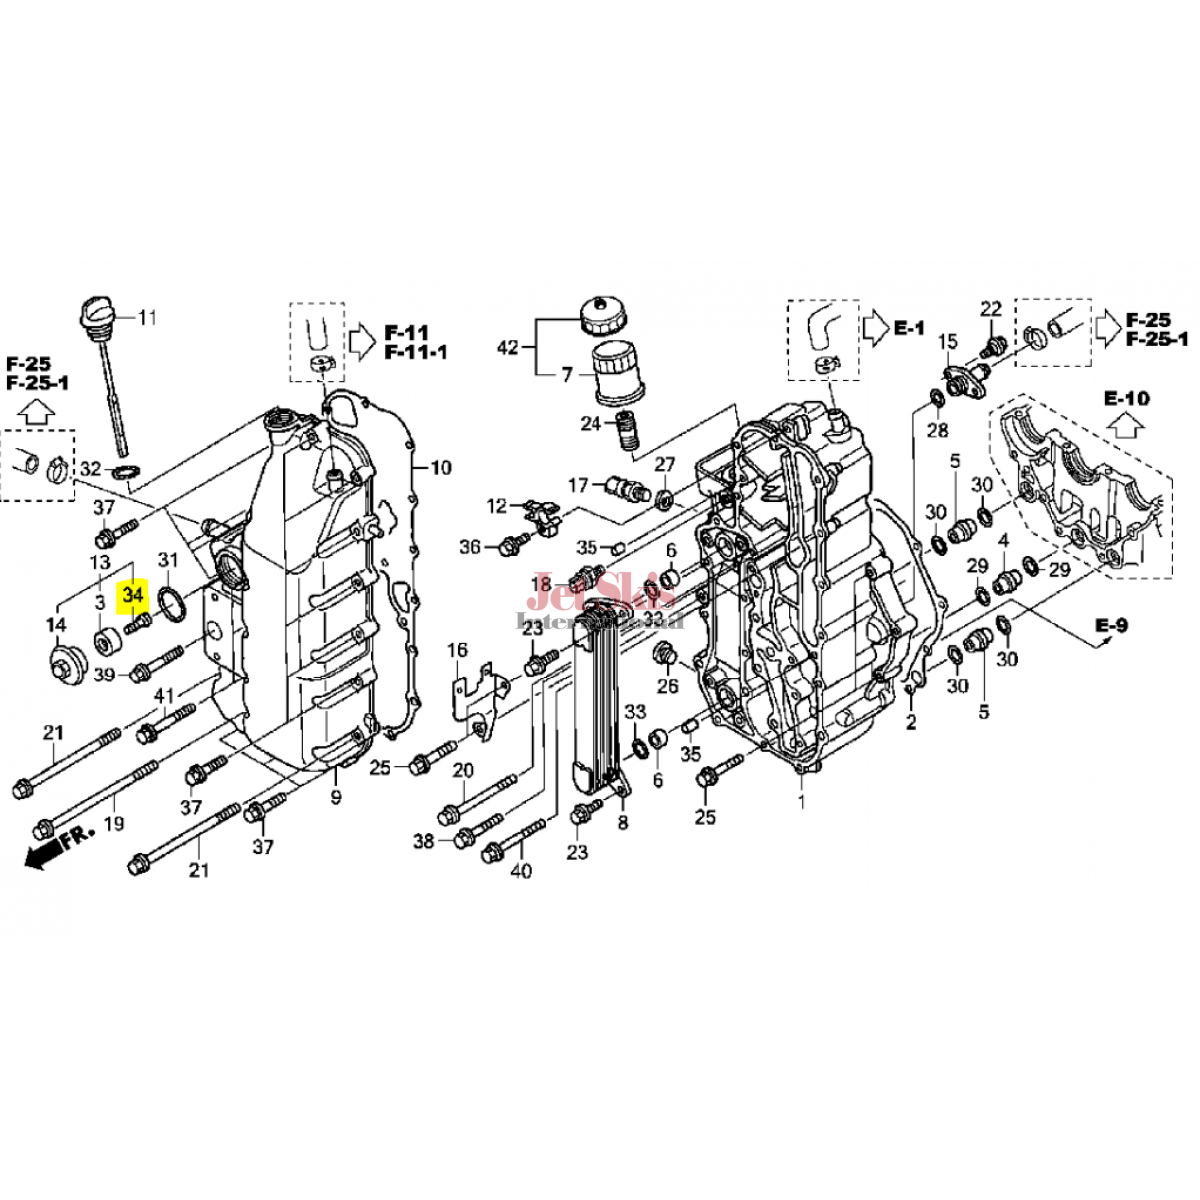 3 8 Buick Engine Belt Routing For in addition 2001 Audi S4 Parts Diagram besides Replace Belt besides Nissan 3 0 Liter Engine Diagram Get Free Image likewise 5gmt7 Ecu Located 2007 Ford Fusion Se 3 0. on 2 cylinder supercharger